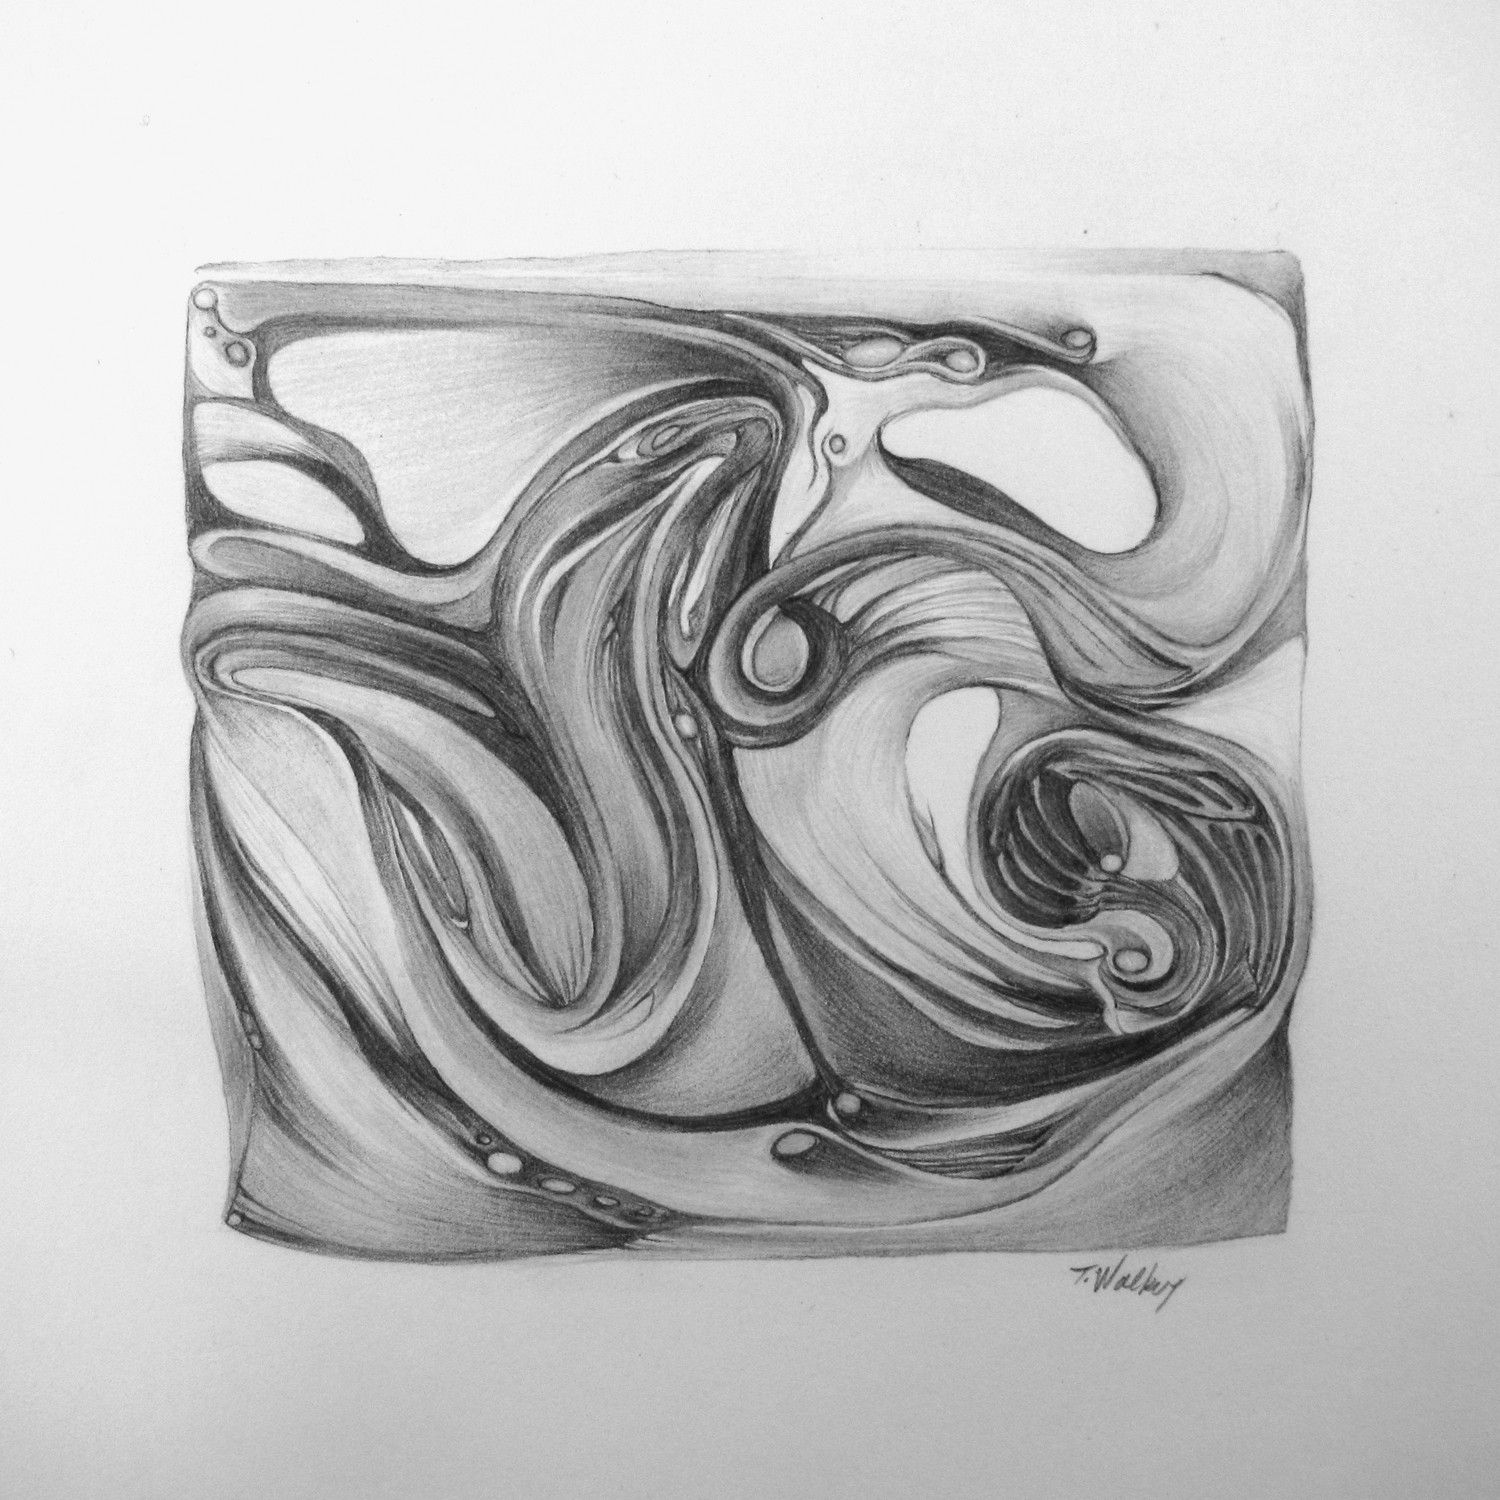 Abstract Pencil Sketch Pencil Sketch